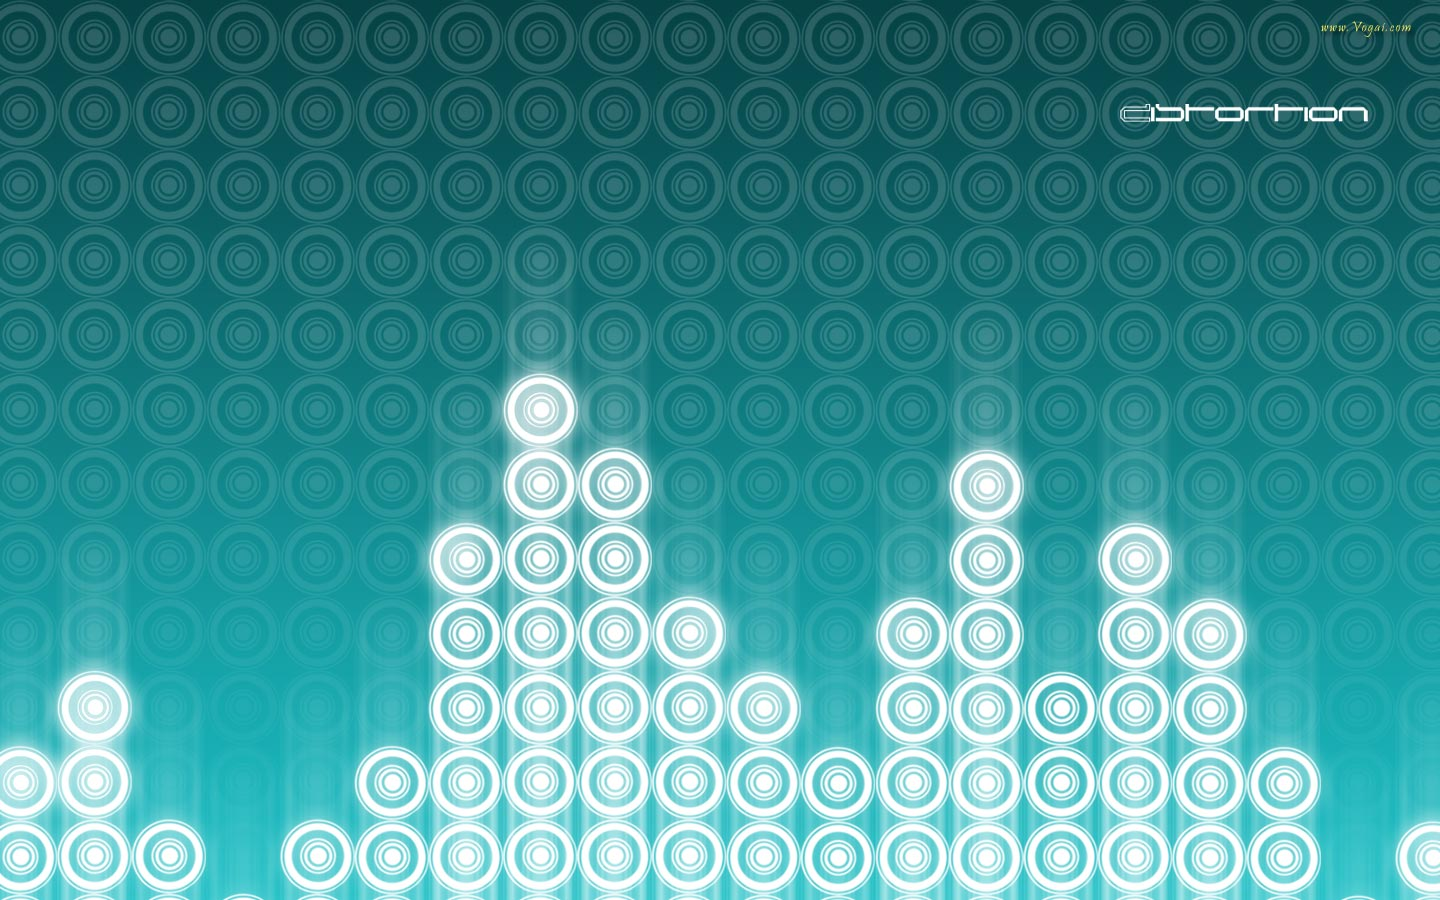 Teal background theme. This circle equalizer wallpaper has widescreen